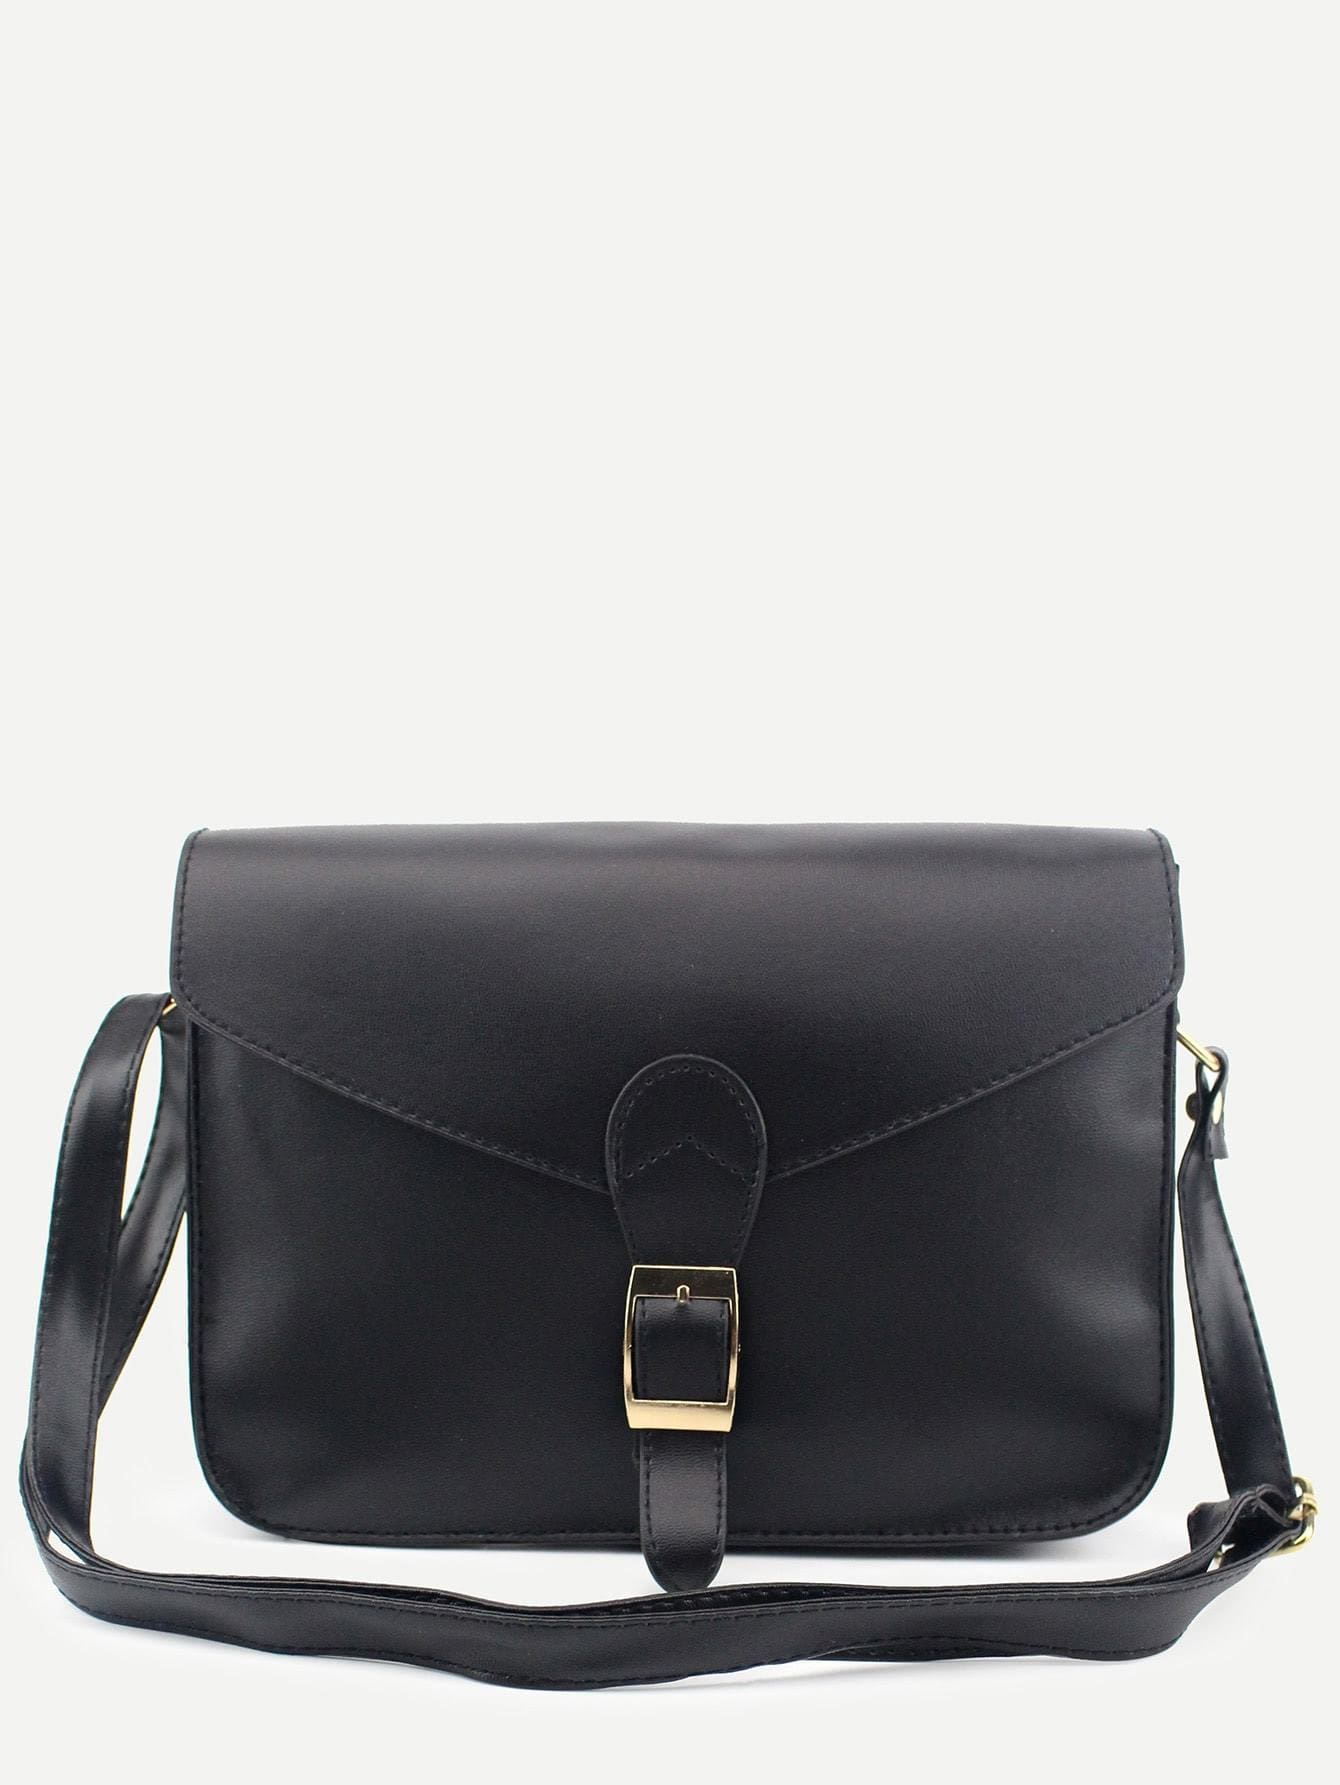 Buckle Strap Closure Envelope Crossbody Bag - Womens Bag